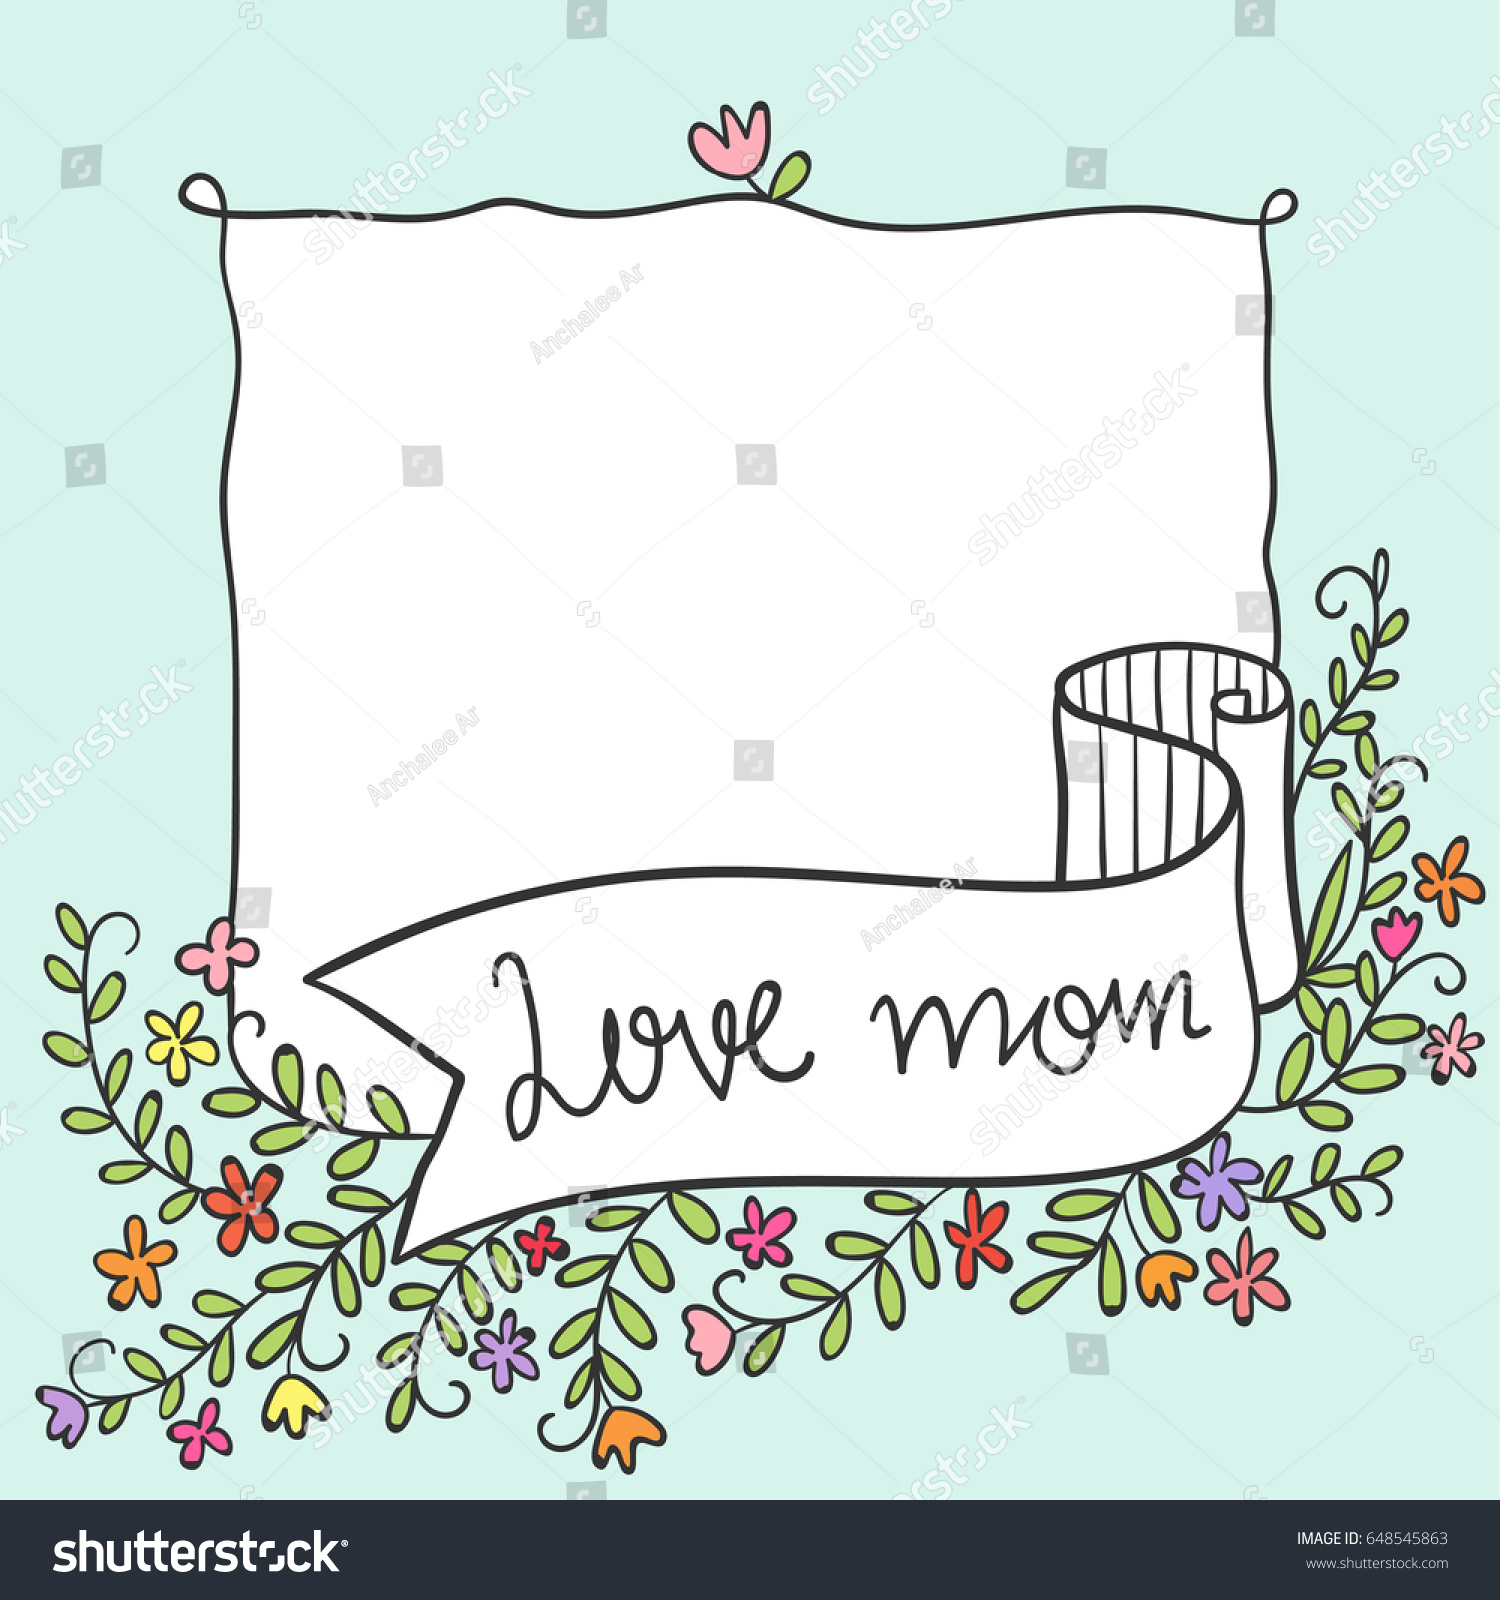 Cute draw vector illustration greeting card stock photo photo cute draw vector illustration greeting card for mother day beauty flowersodle style m4hsunfo